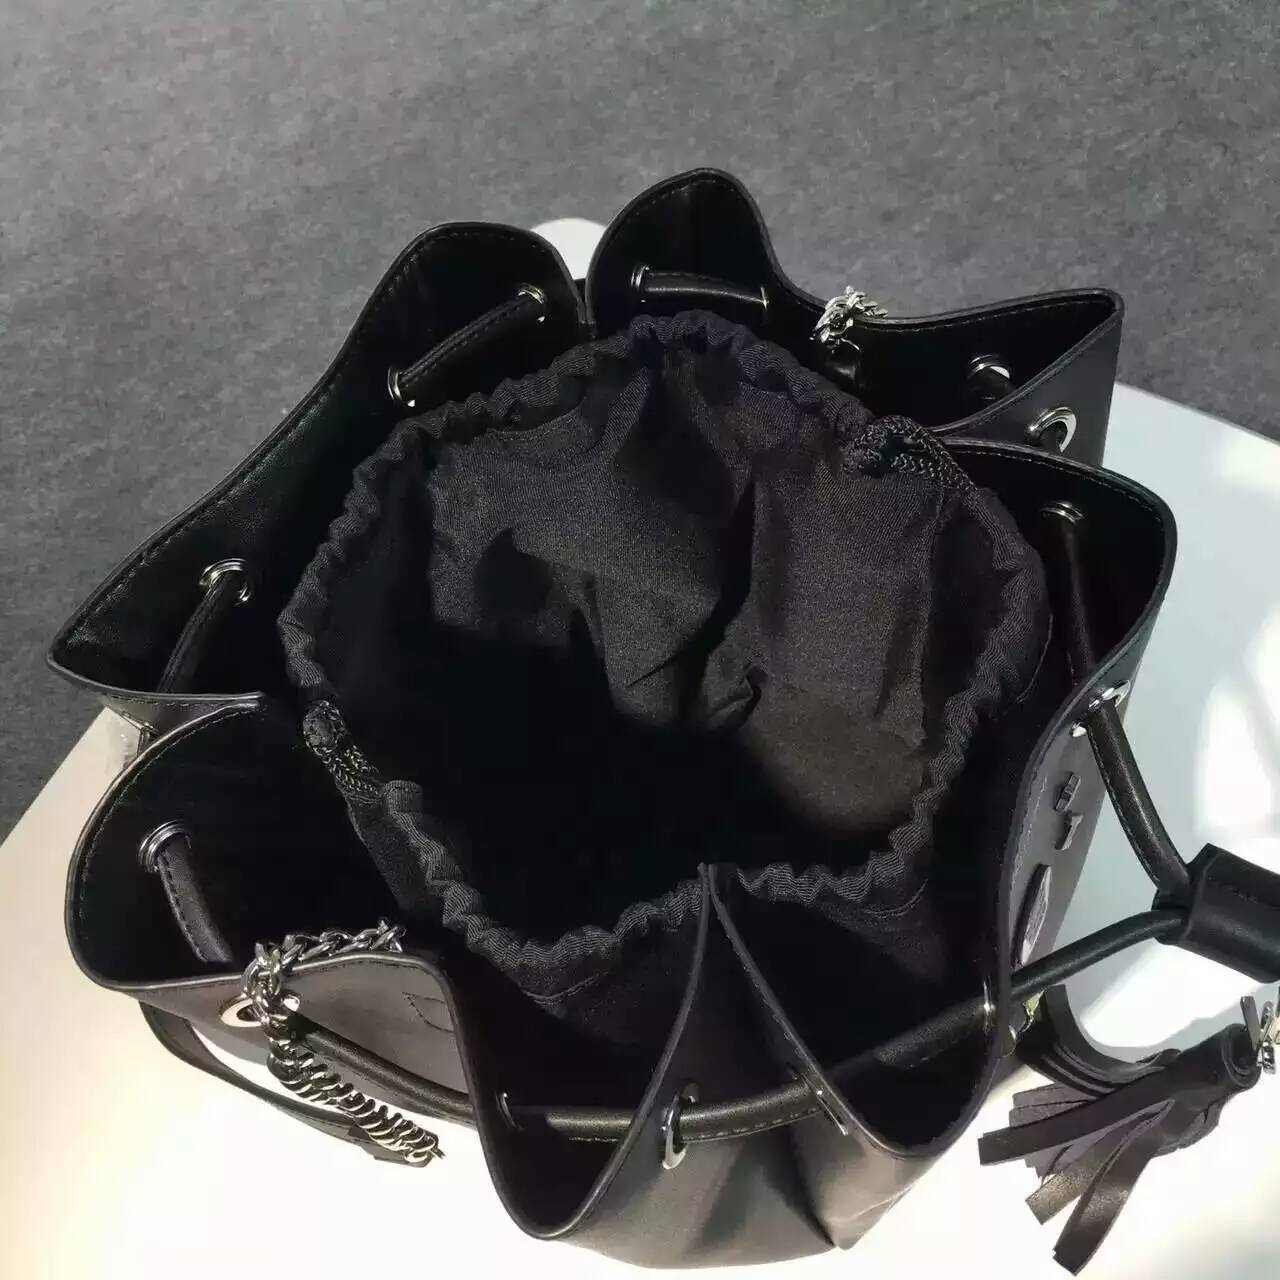 Limited Edition!2016 New Saint Laurent Bag Cheap Sale-Saint Laurent Medium Emmanuelle Bucket Bag in Black Leather with Lipstick Decoration